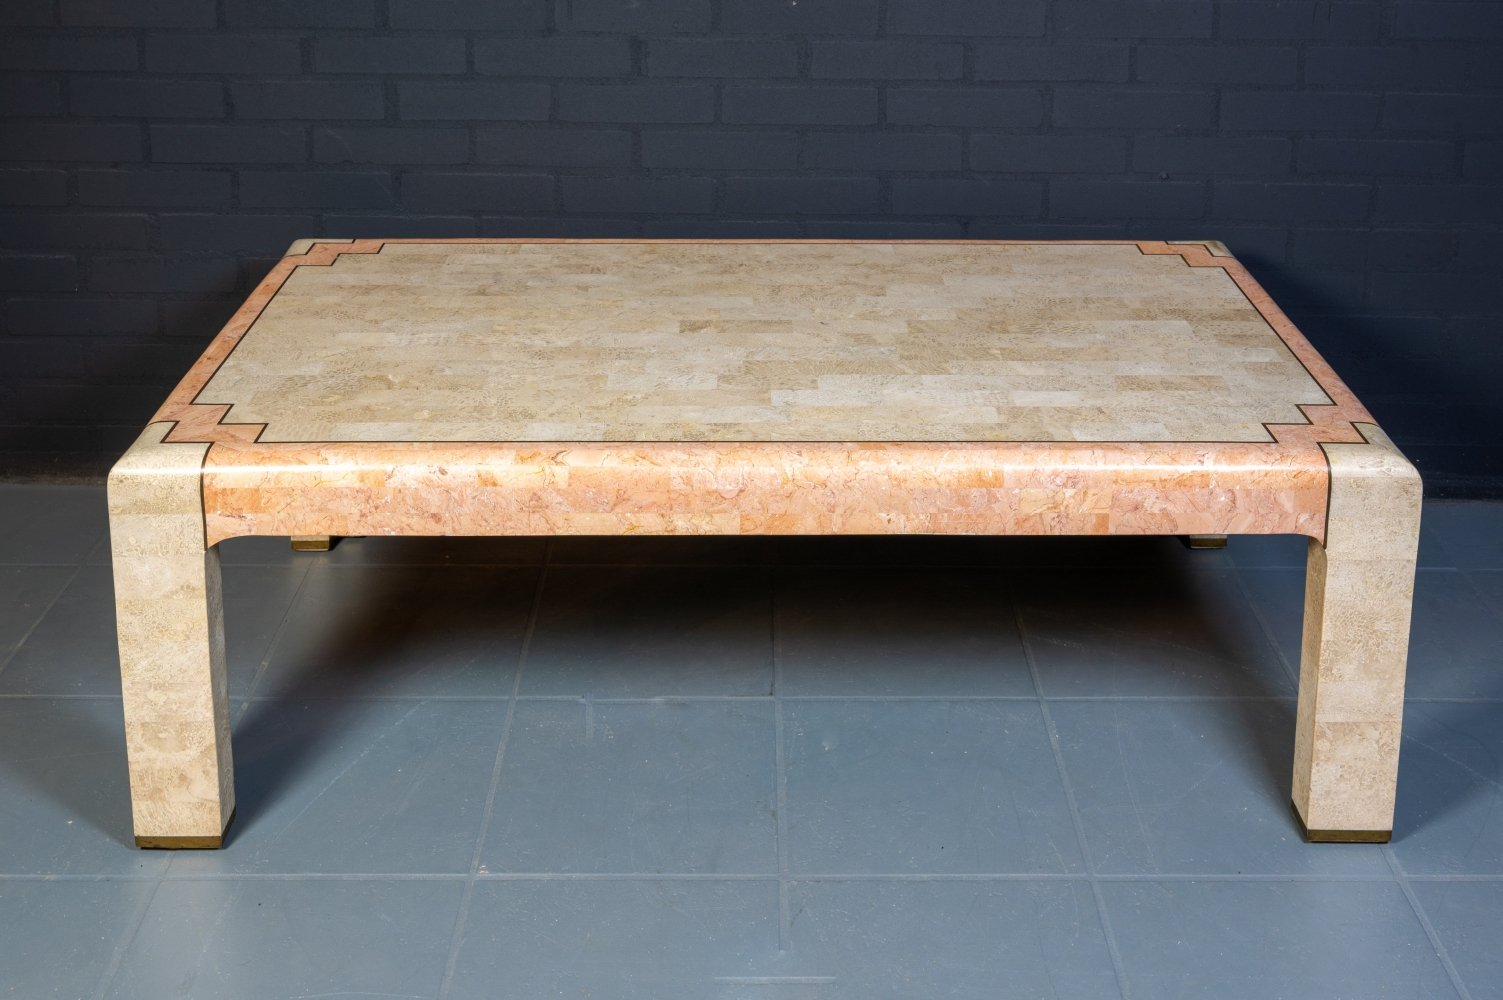 Vintage Tessellated Marble & Brass Coffee Table, 1980s